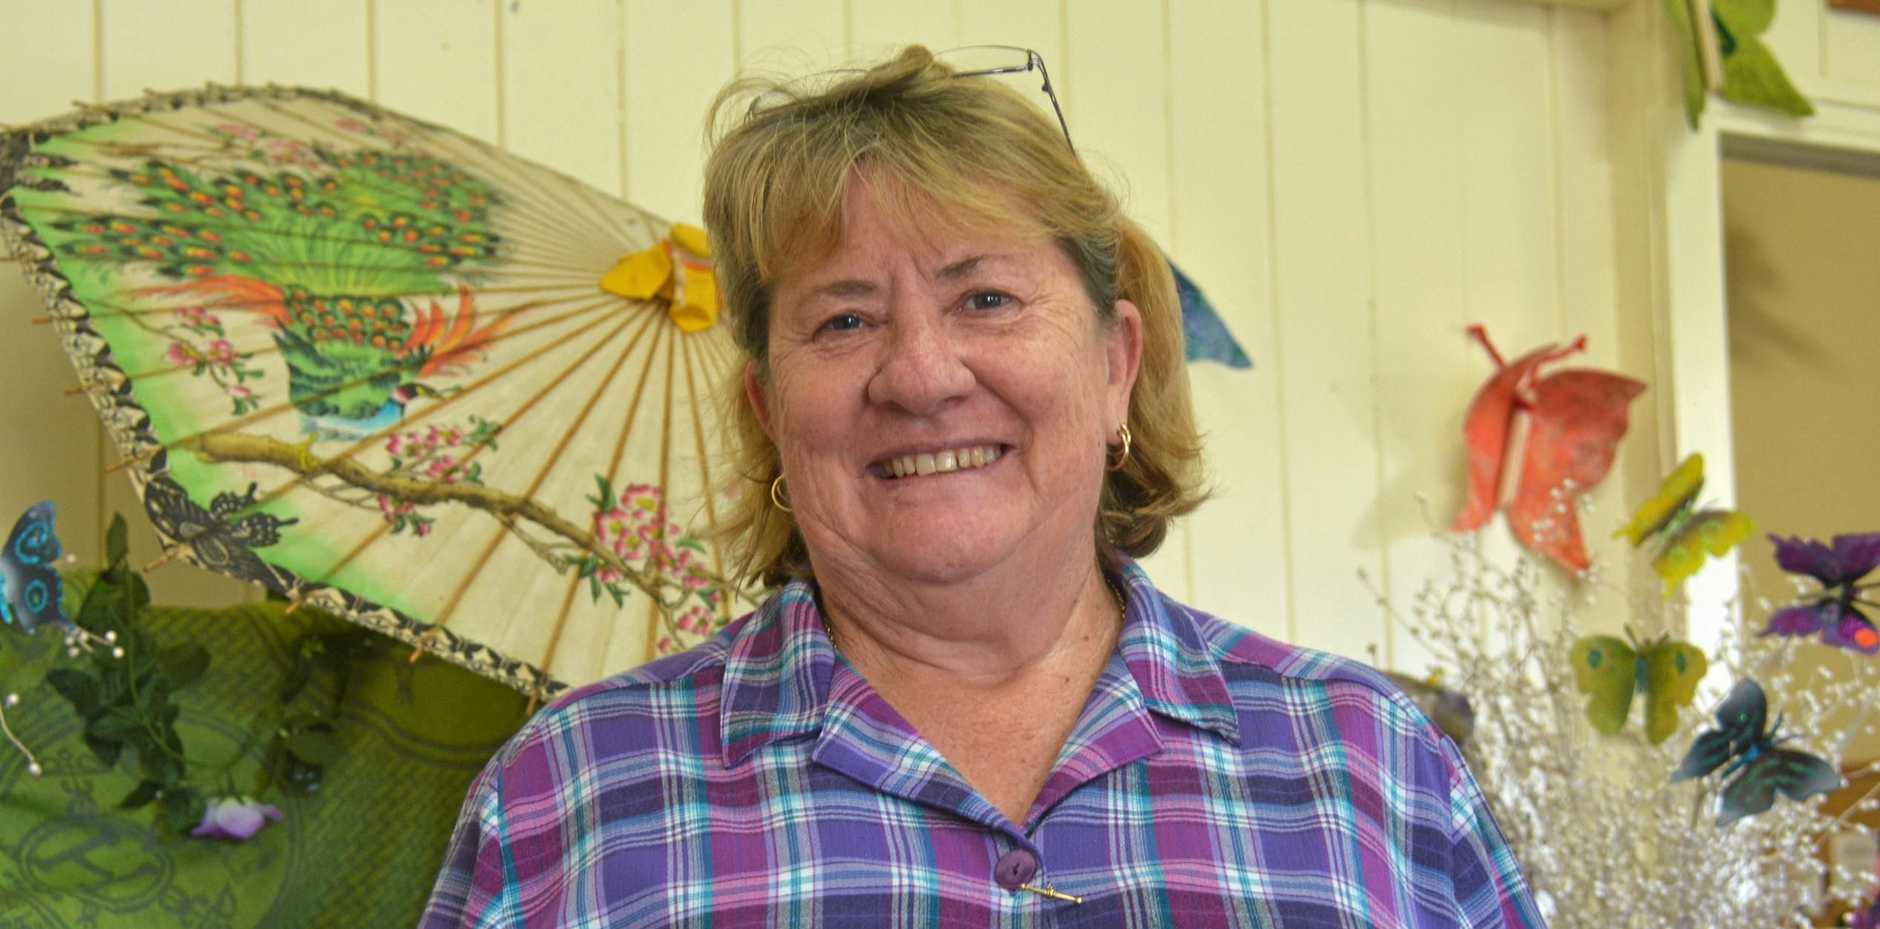 Boots'n Bulldust CEO Sandy Towell is a big advocate for young people and mental health, directing support to those who need it, at Creative Connections in Nanango.